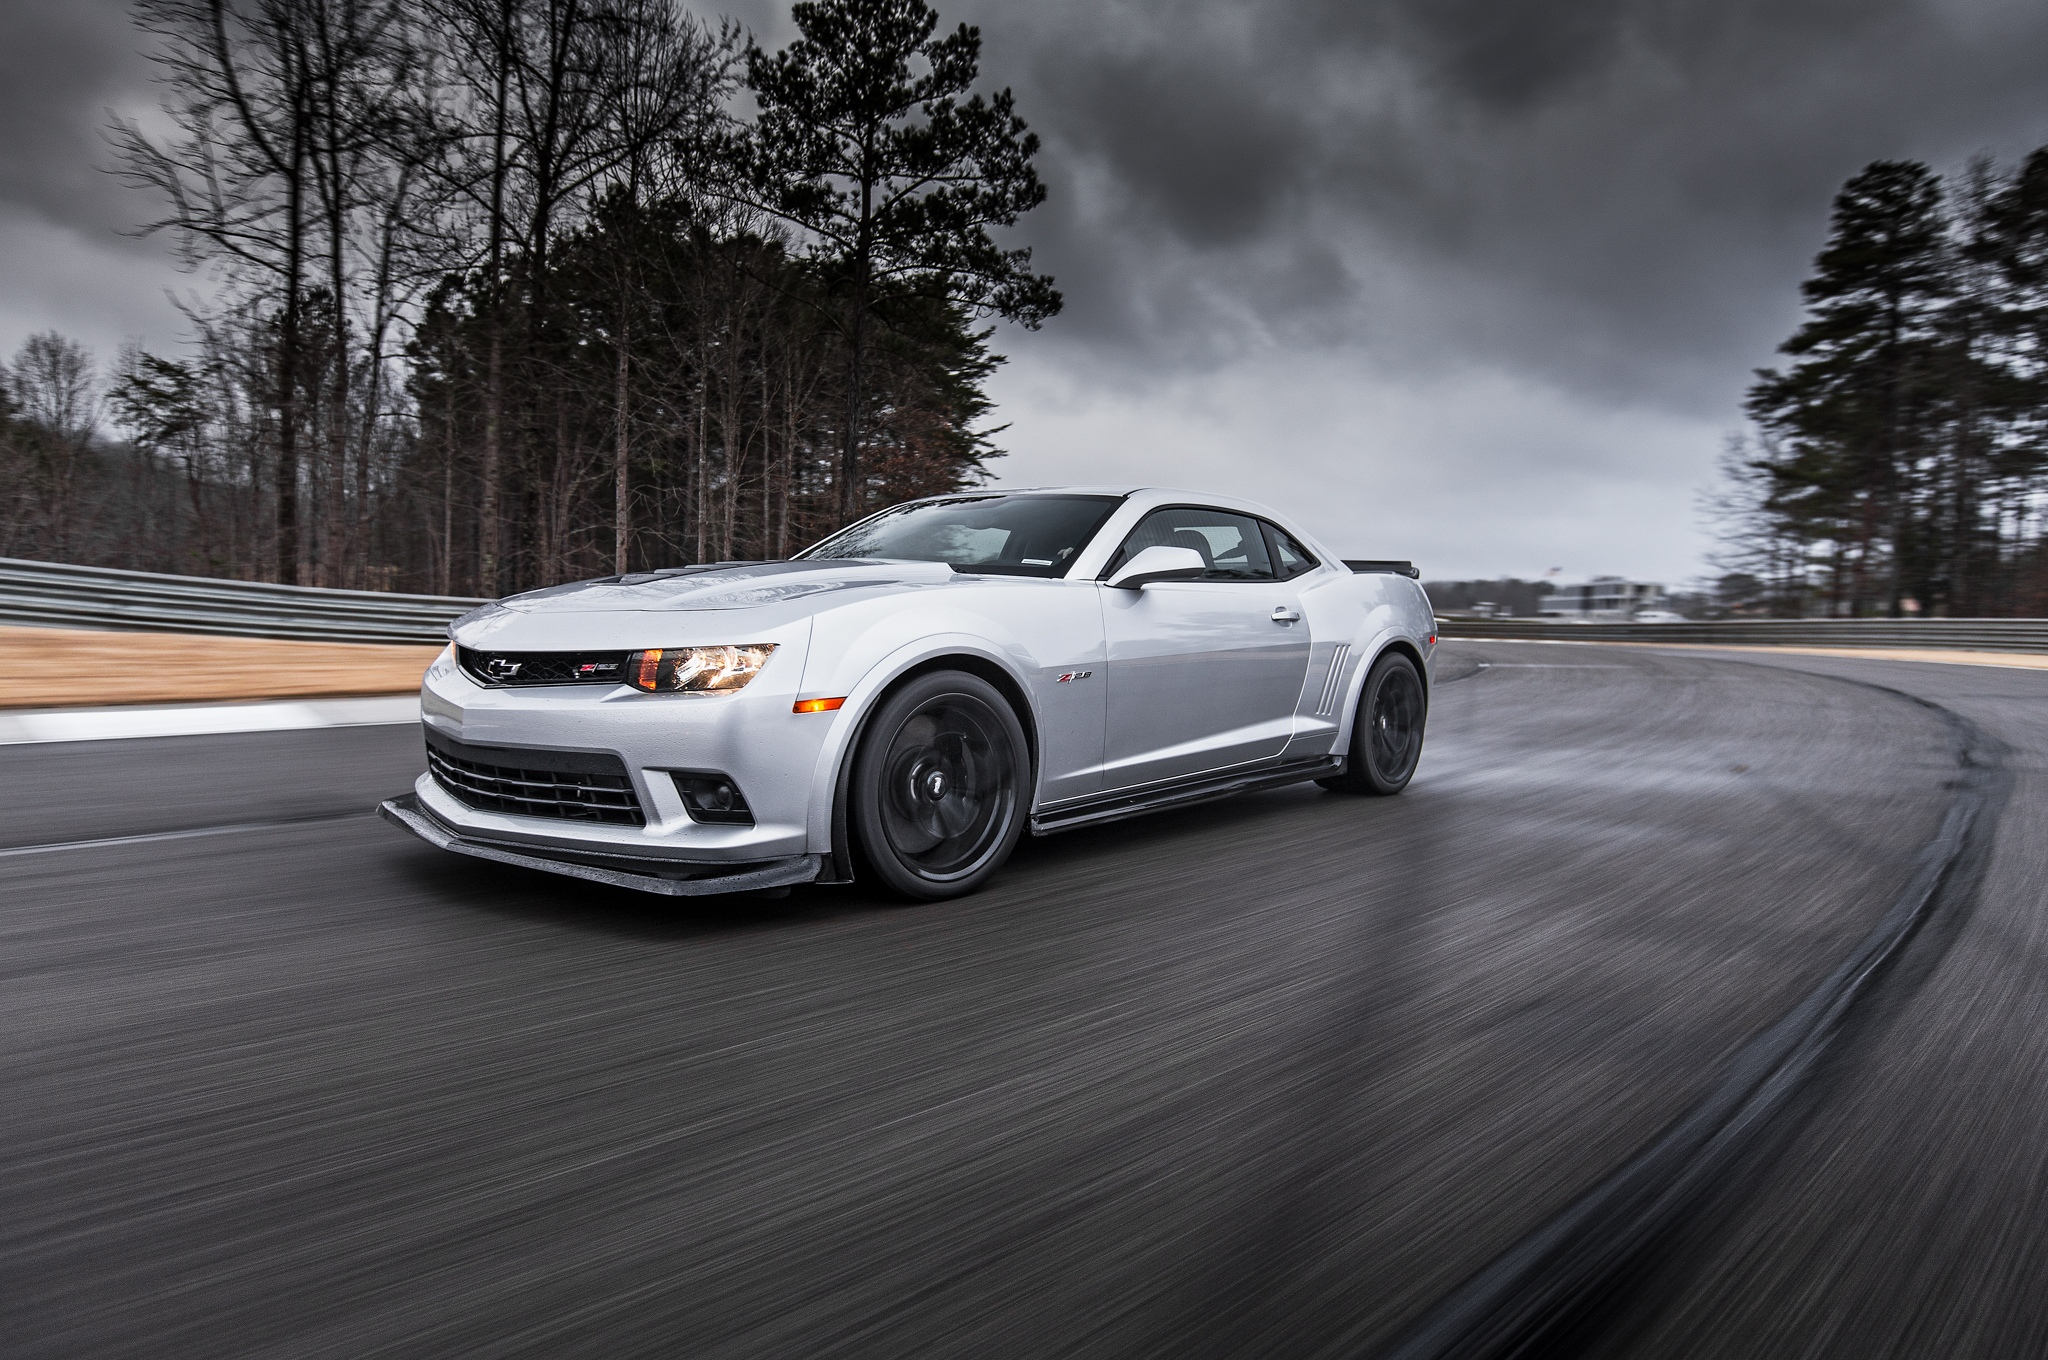 2014-Chevrolet-Camaro-Z28-front-three-quarter-in-motion-03